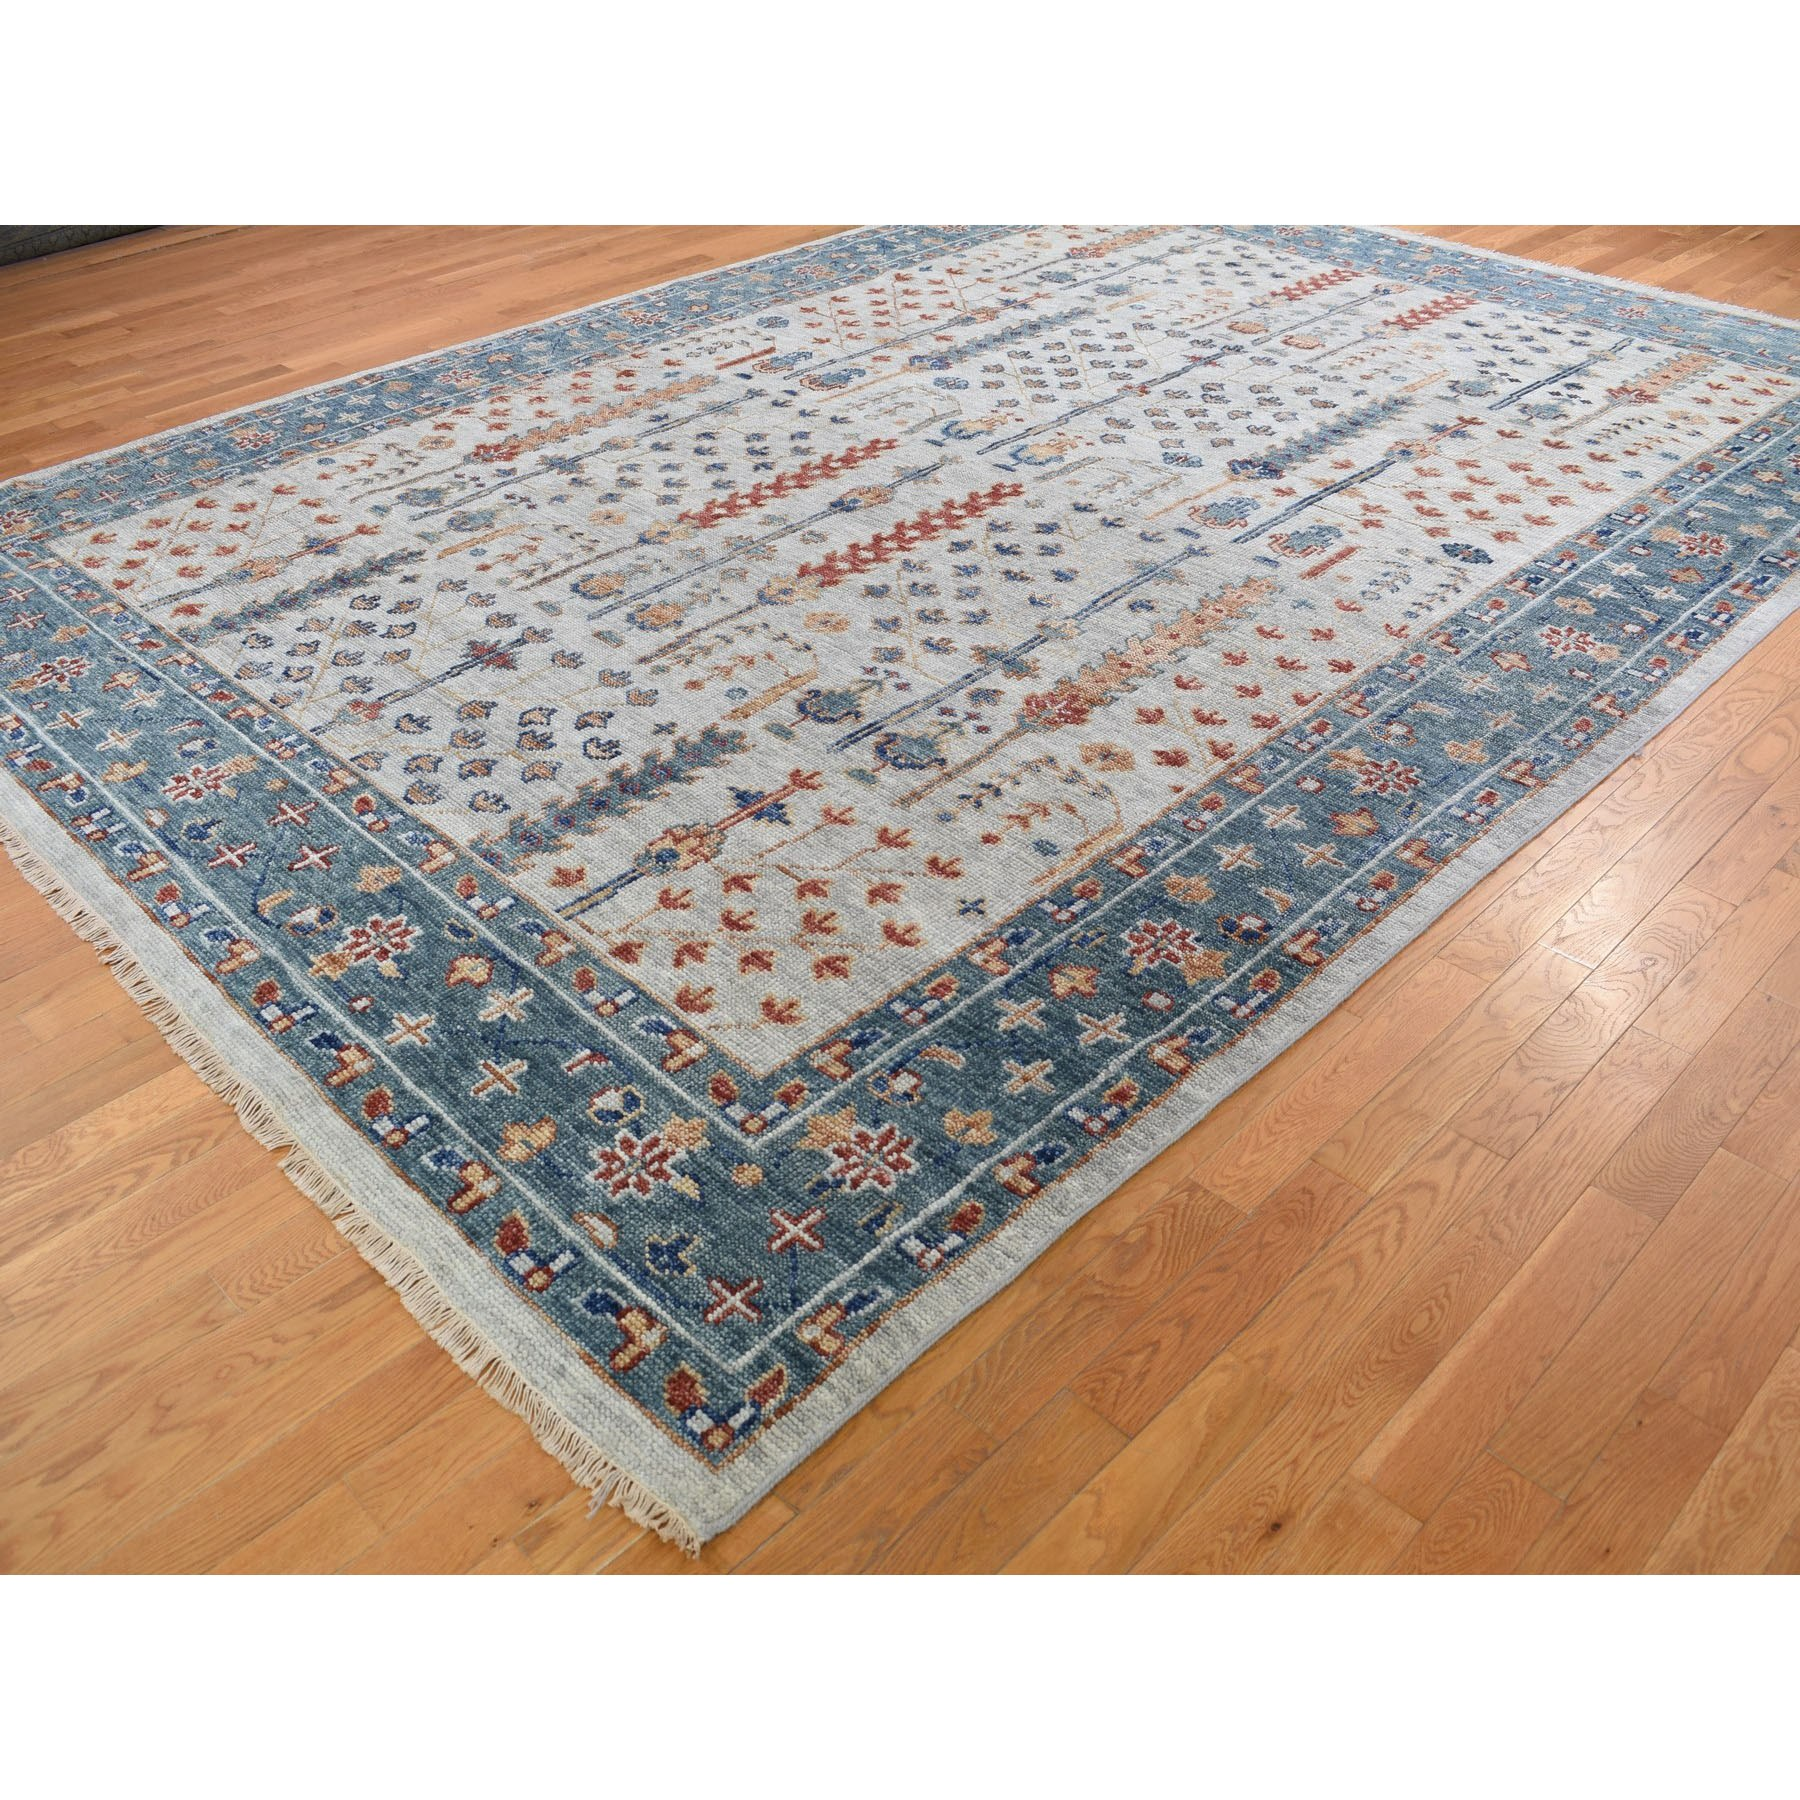 10-x13-10  Supple Collection With Tree Design Soft wool Hand Knotted Oriental Rug